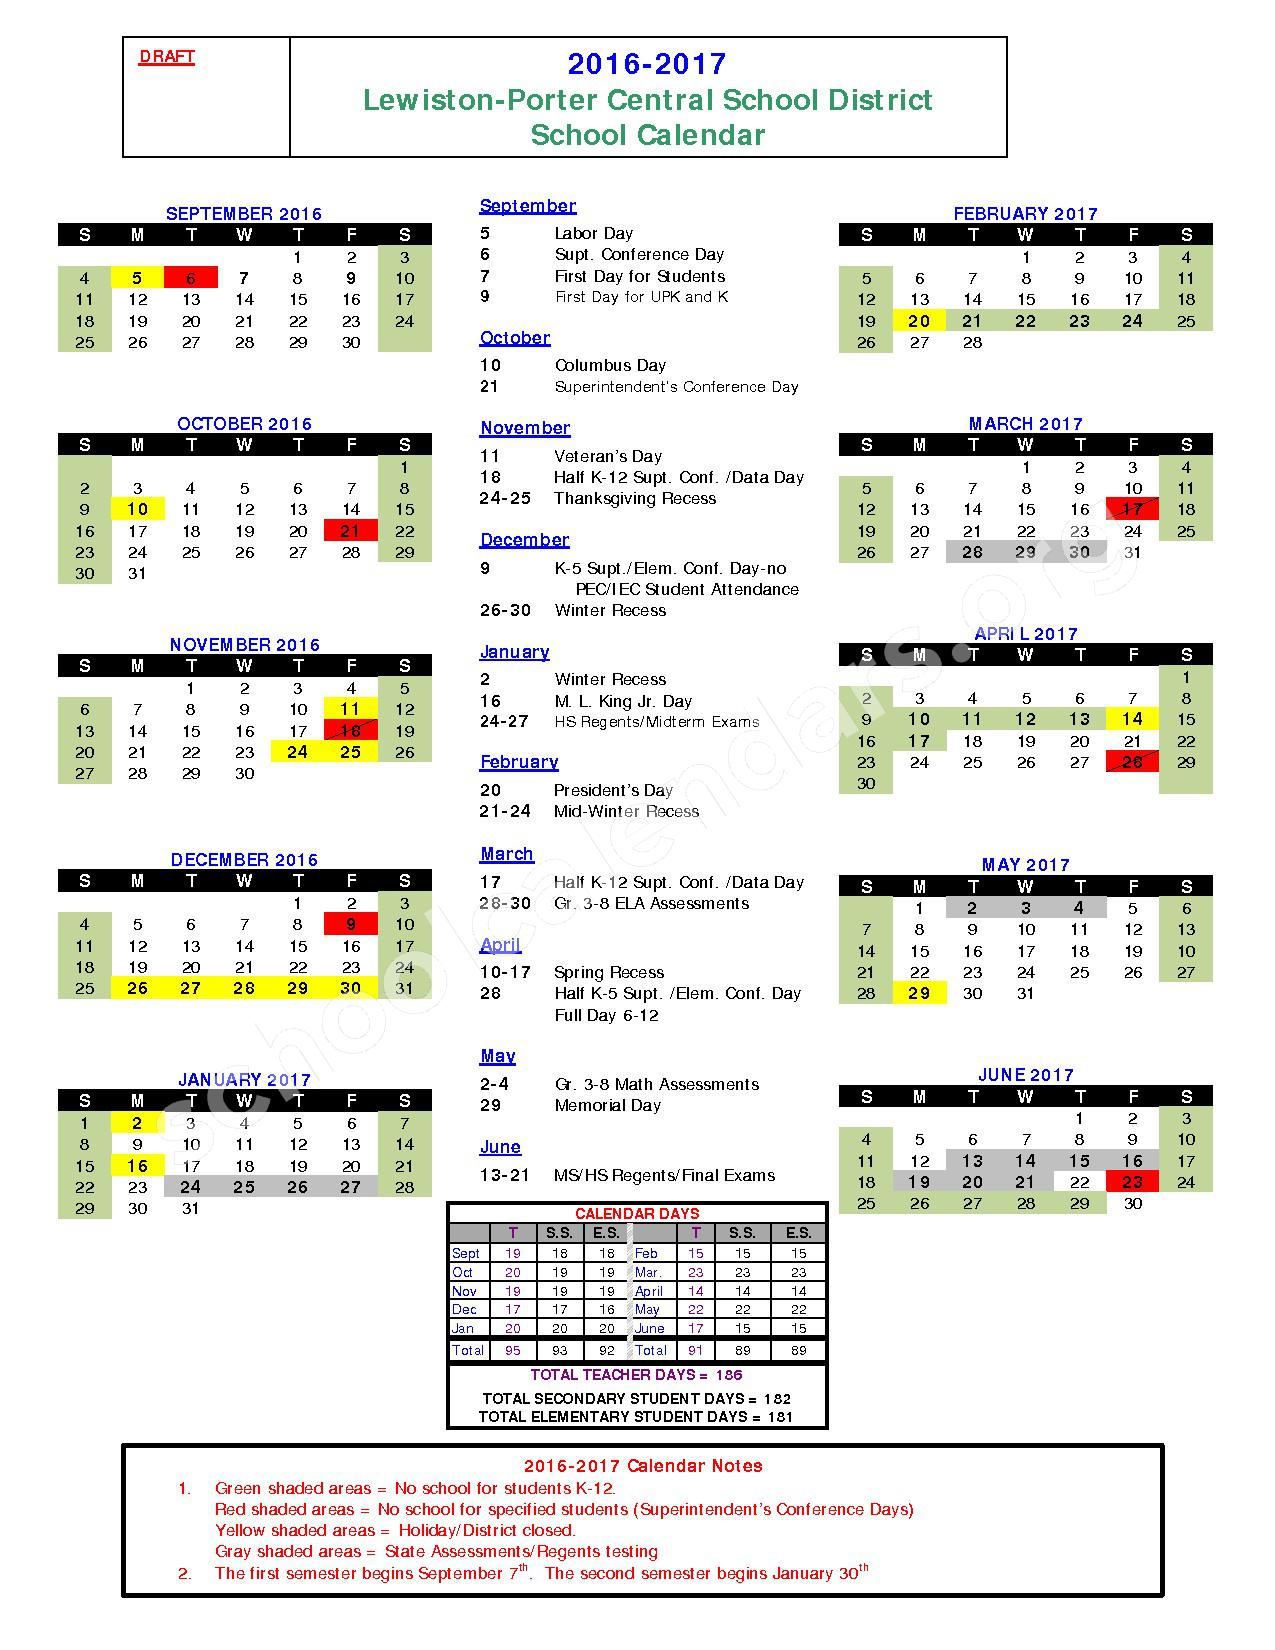 2016 - 2017 District Calendar – Lewiston-Porter Central School District (Lew-Port) – page 1